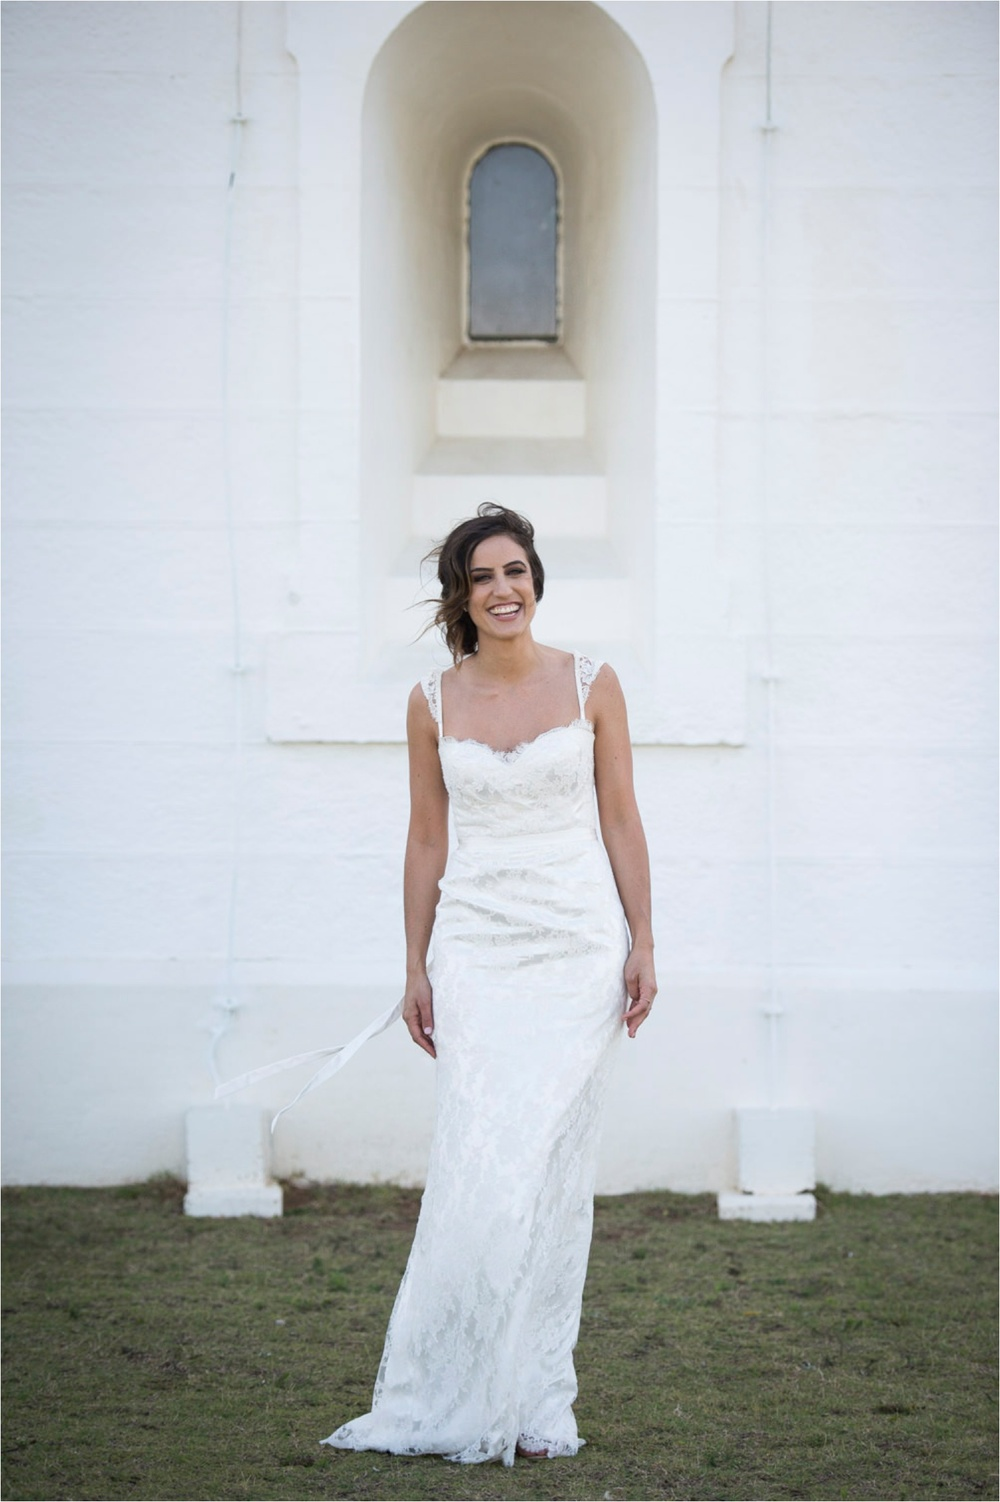 Nicole&Carlie_Watsons_Bay_Hotel_Wedding_by_Gold_Coast_Photographers-The_Follans29.jpg